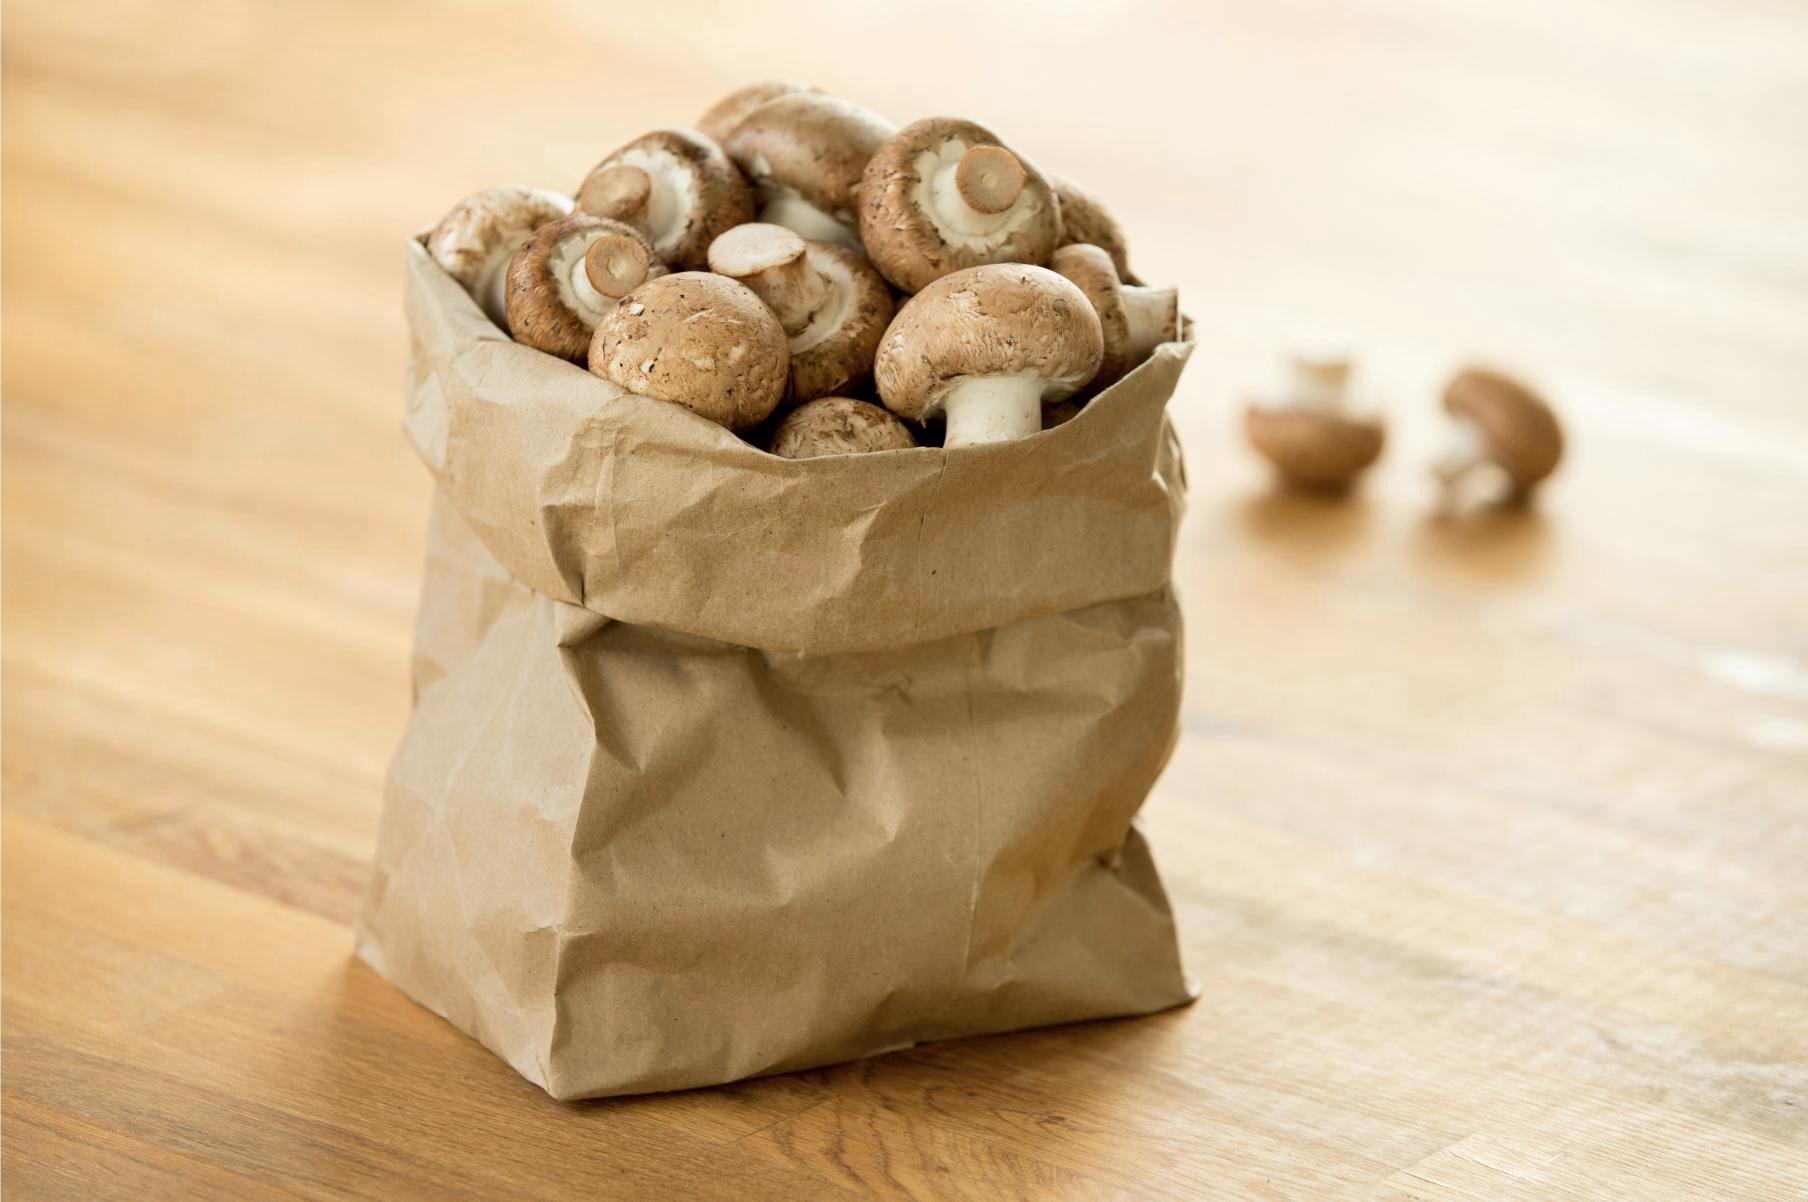 """Western Foods on Twitter: """"Great #FoodFacts from the @MushroomCouncil! To  prolong their shelf life, store your mushrooms in their original packaging  or a porous paper bag! https://t.co/o5LXTEYlRS https://t.co/QQQh5k1icm"""" /  Twitter"""